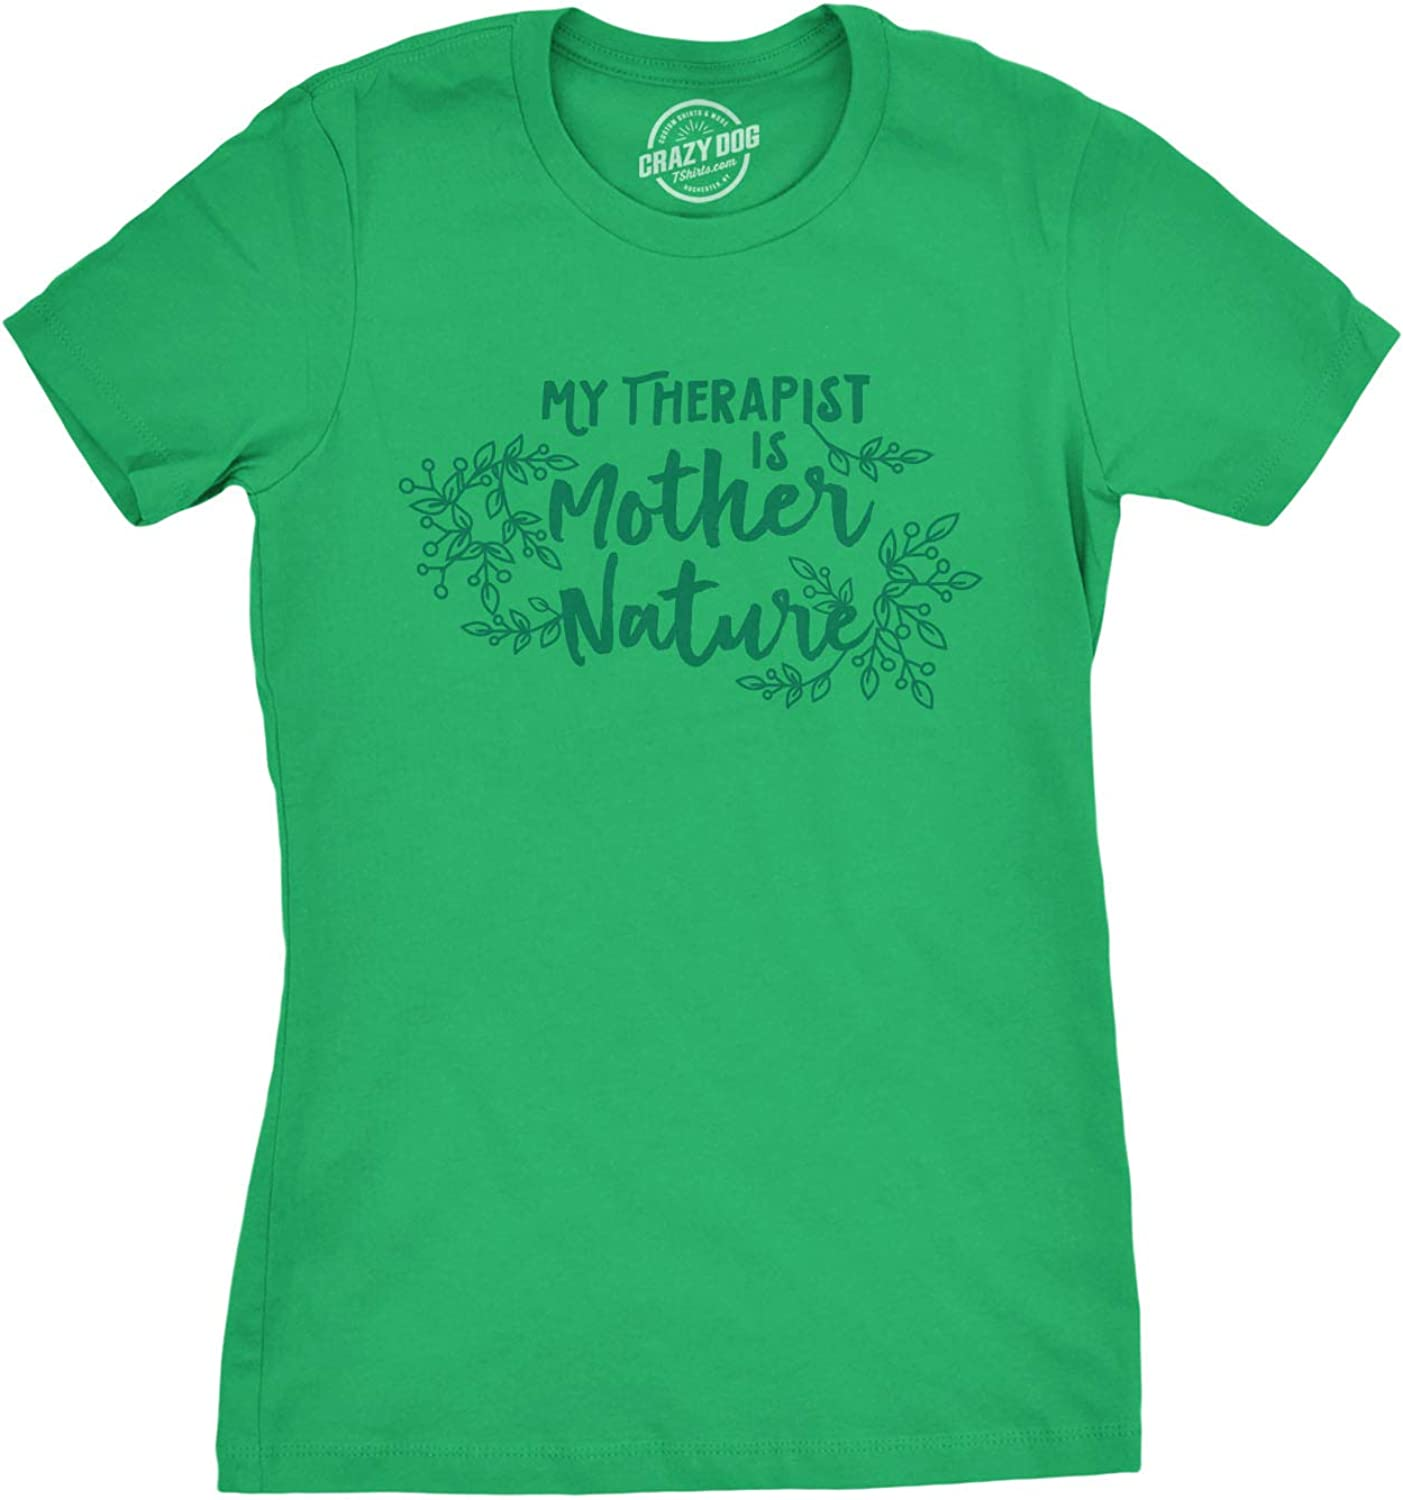 Womens My Therapist is Mother Nature Tshirt Funny Outdoors Tee